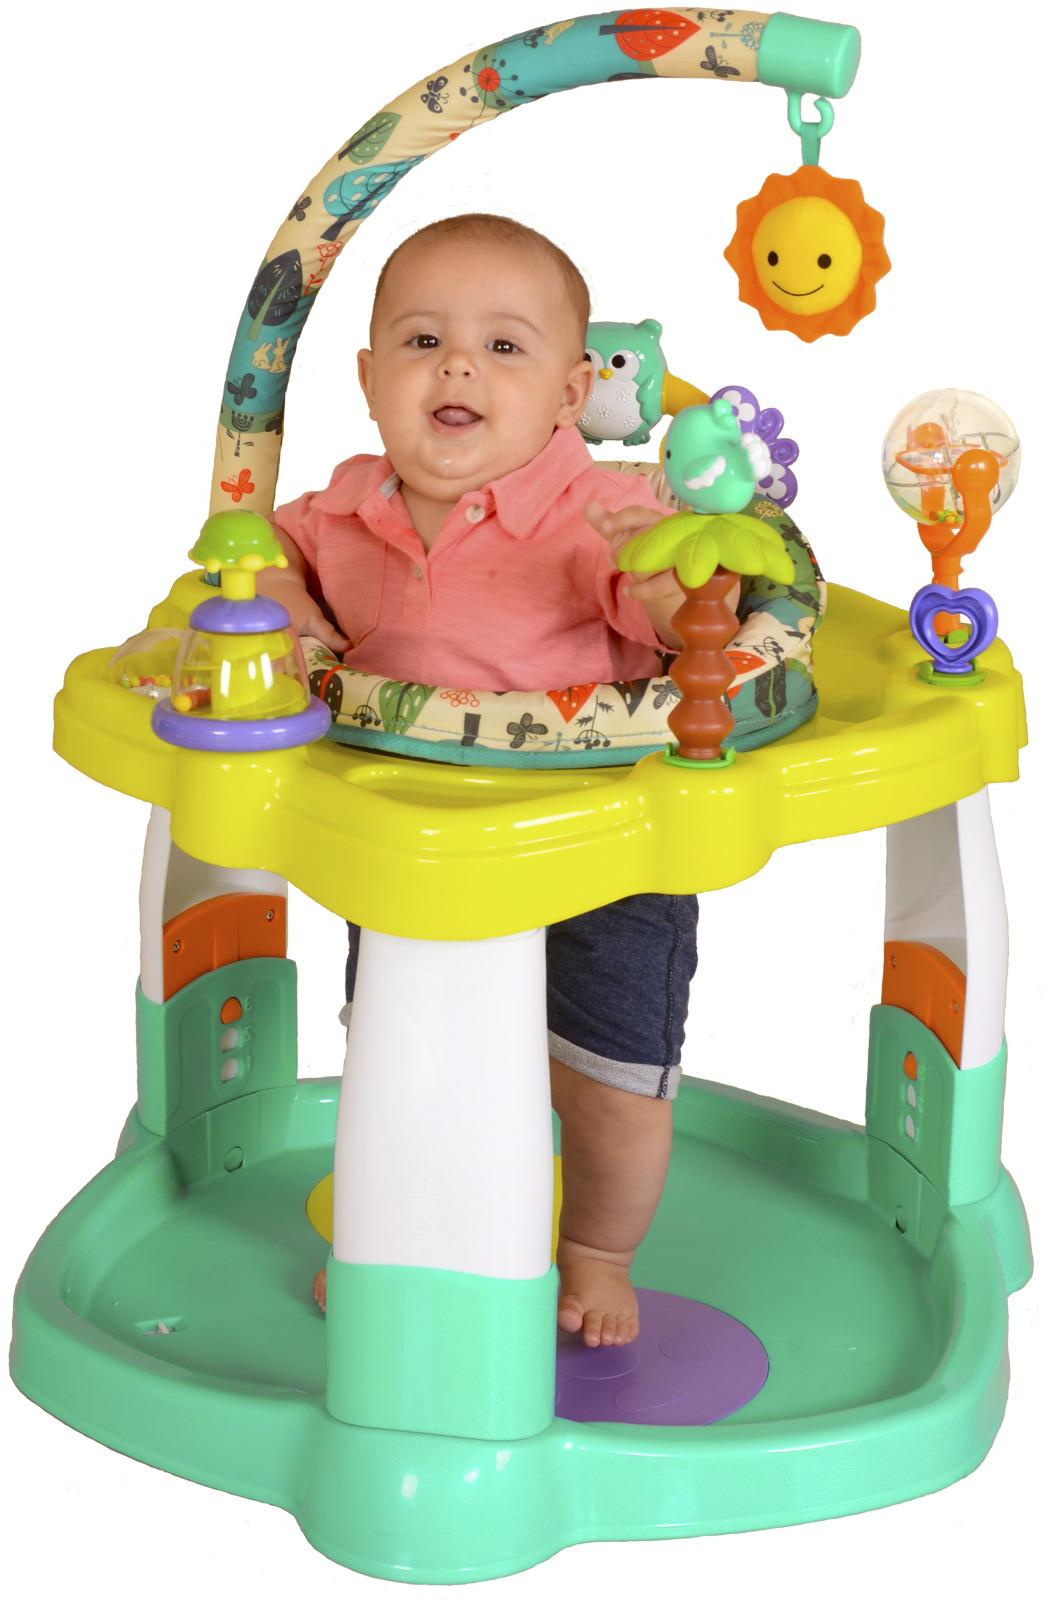 Baby Bouncer Activity Center Jumper with 360 Degree